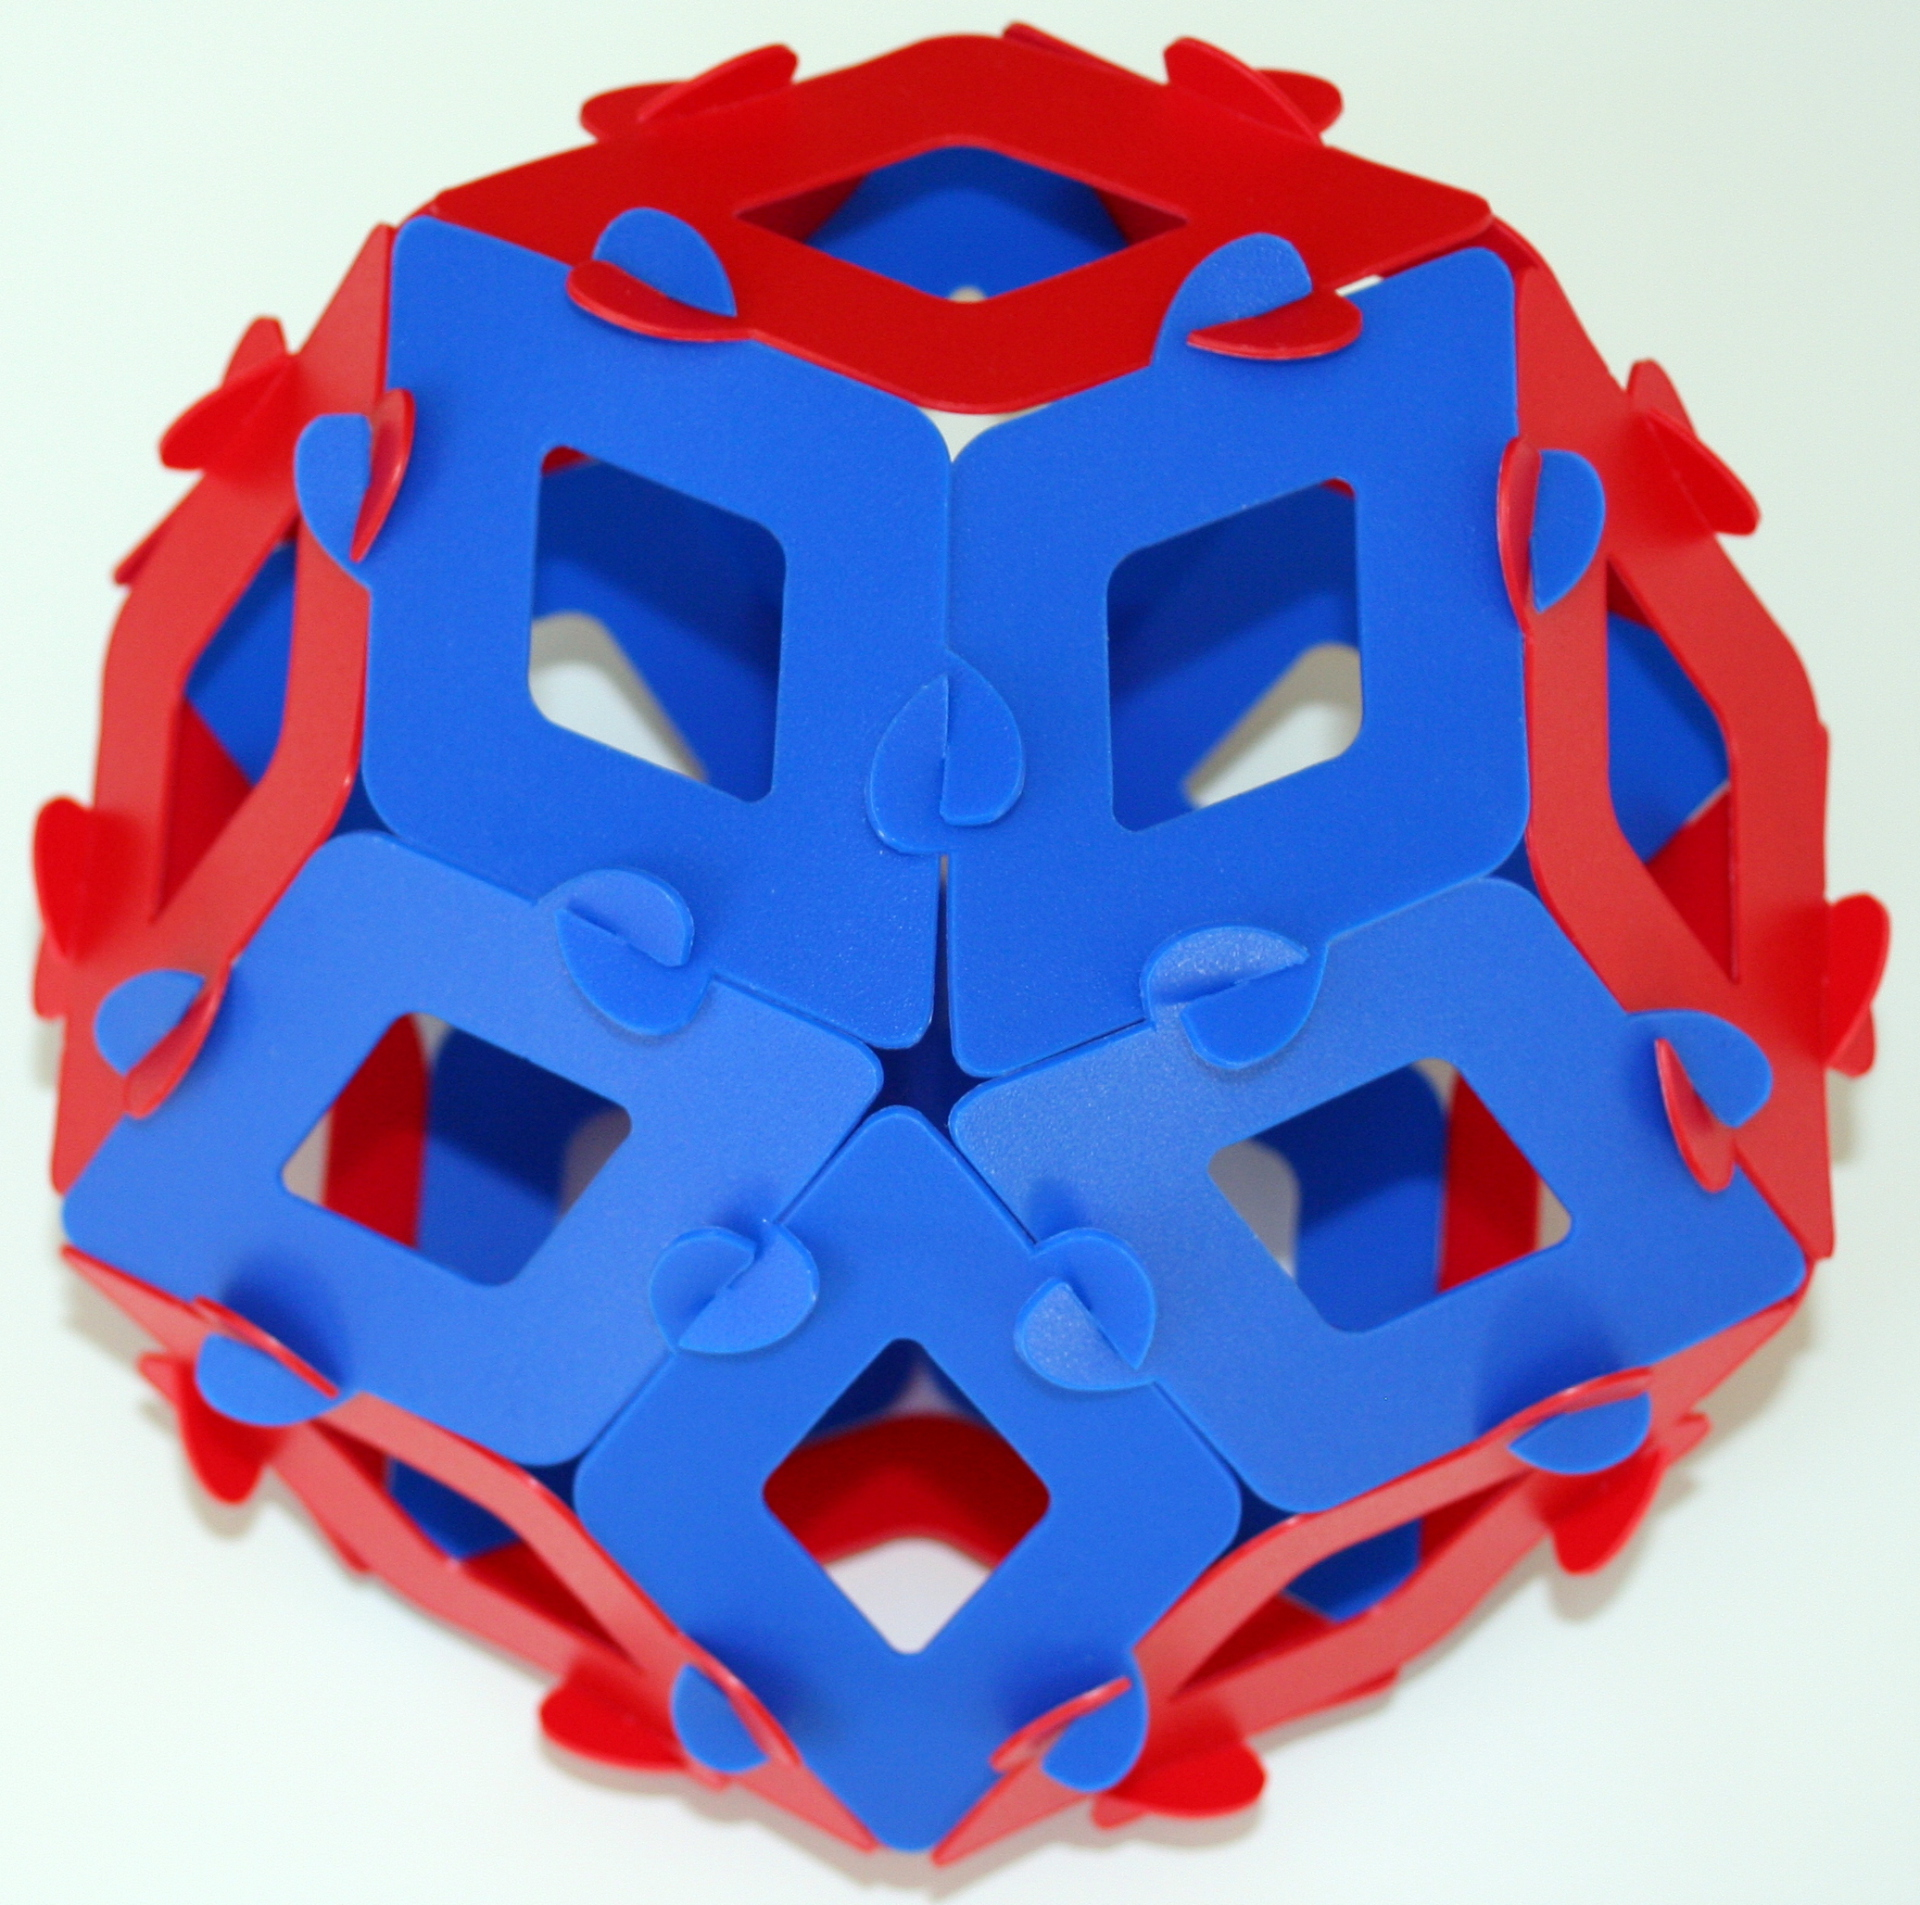 Rhombic icosahedron (reduced rhombic triacontahedron)